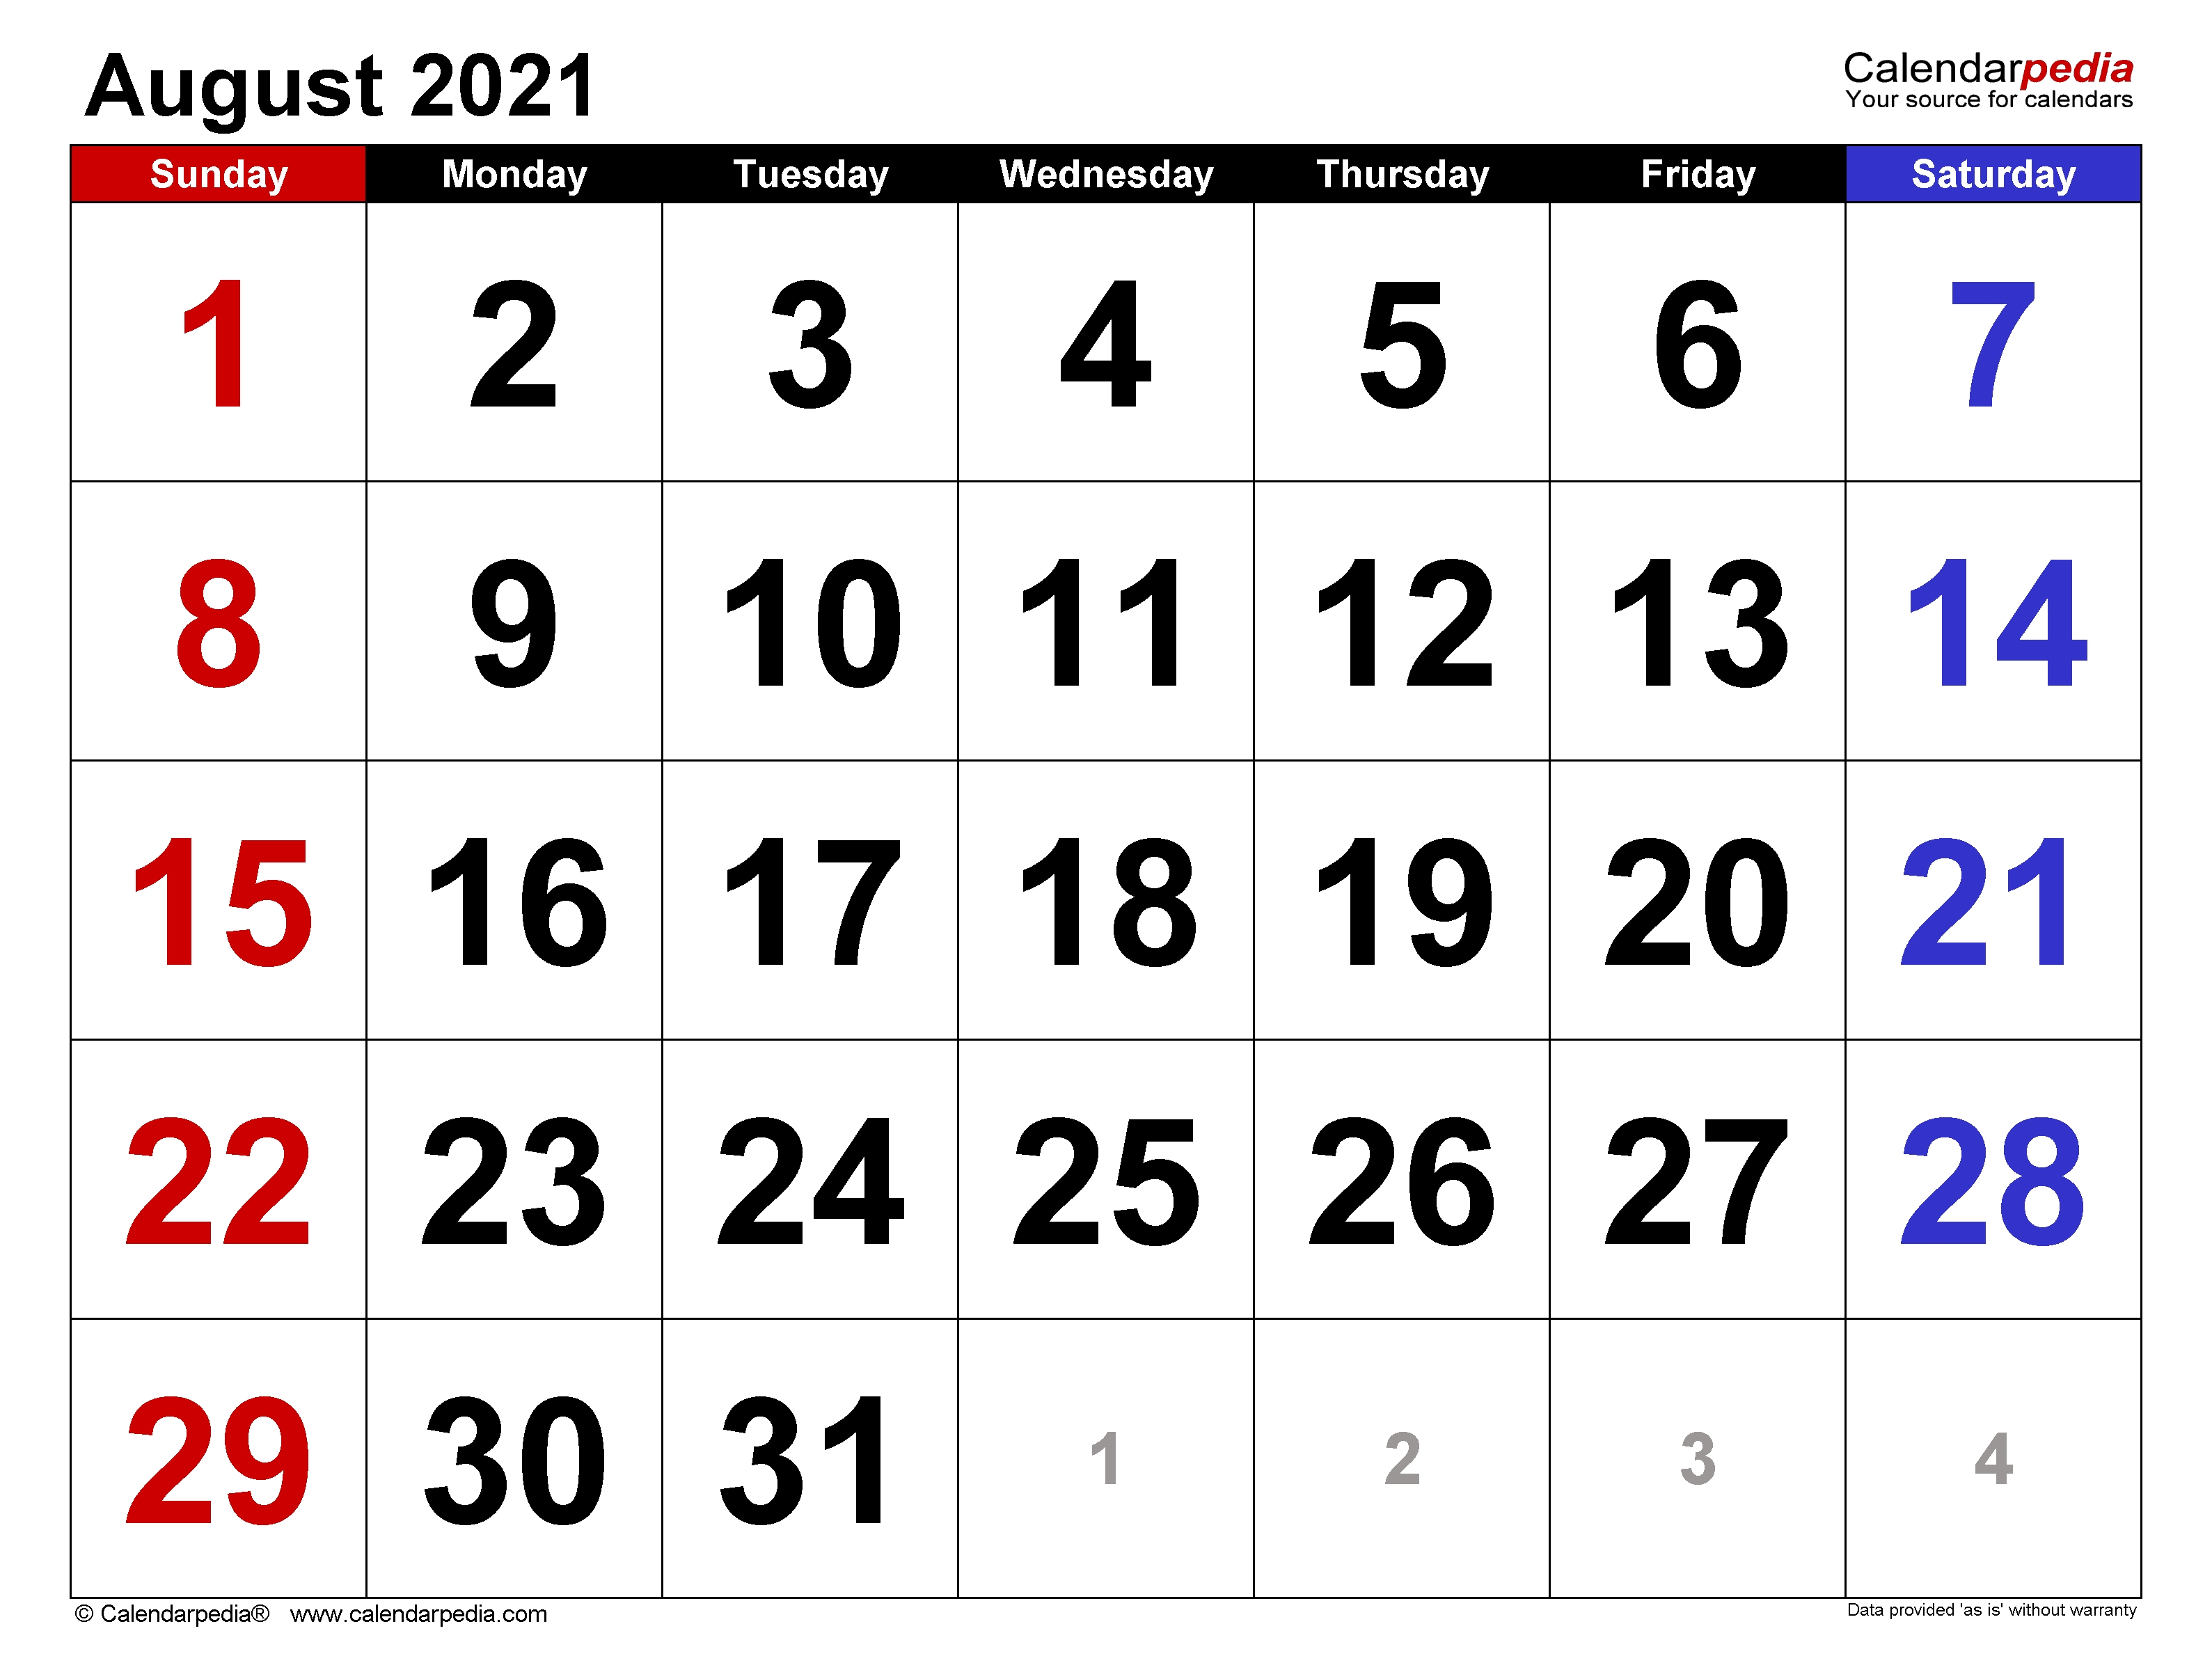 August 2021 Calendar | Templates For Word, Excel And Pdf August 2021 Template Calendar